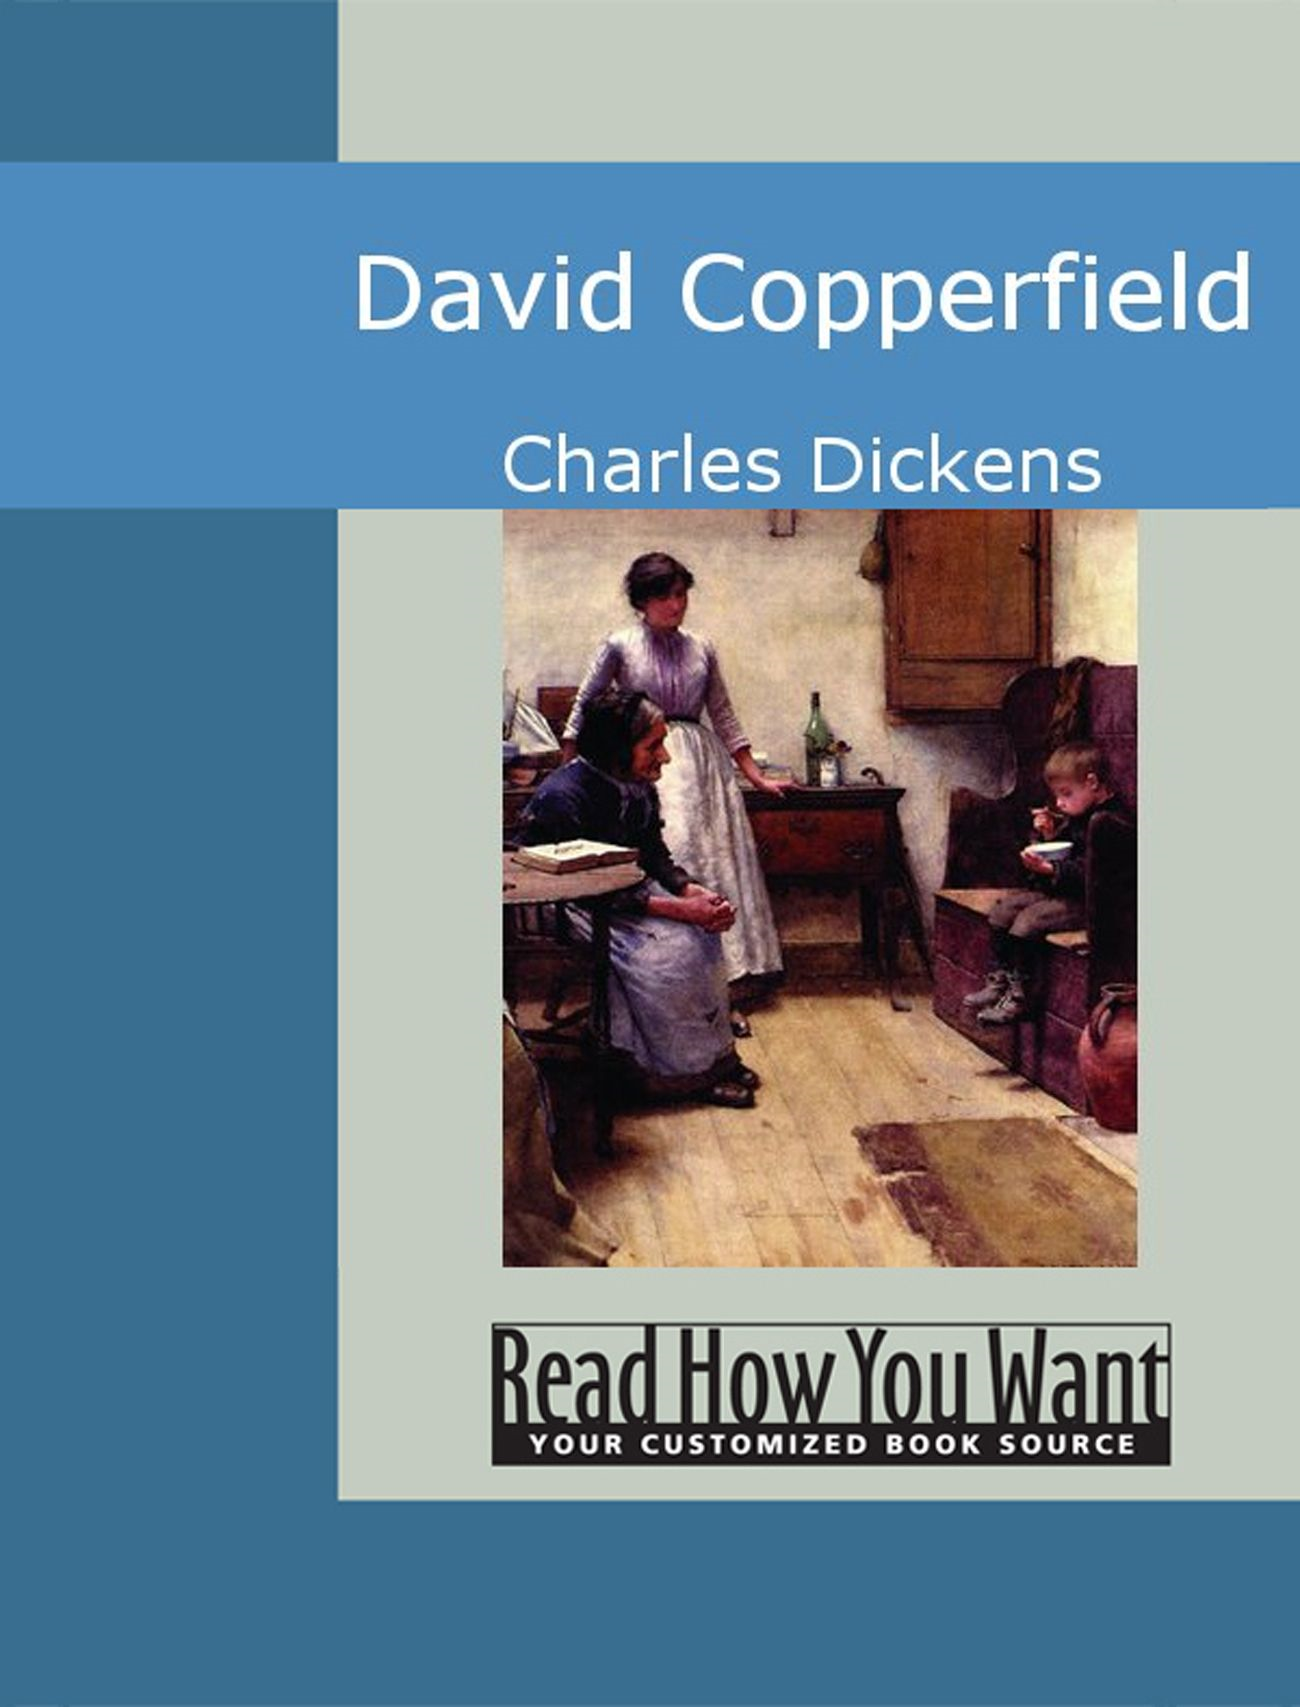 Cover Image: David Copperfield